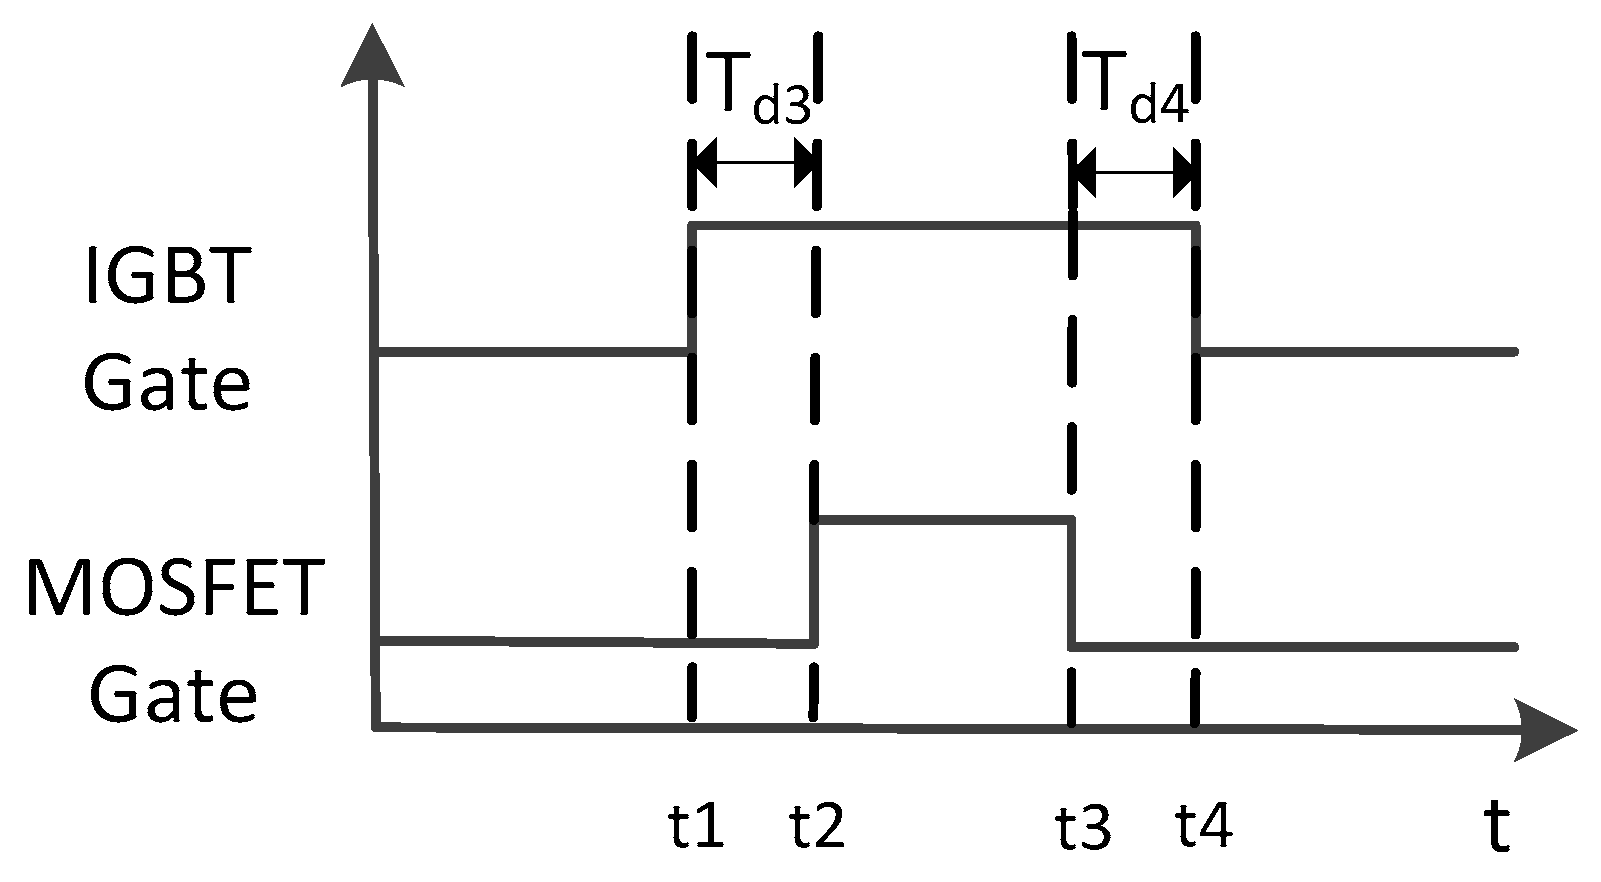 Energies Free Full Text Igbt Dynamic Loss Reduction Through Mosfet Tester As Well Inverter Circuit Diagram On 11 01182 G011